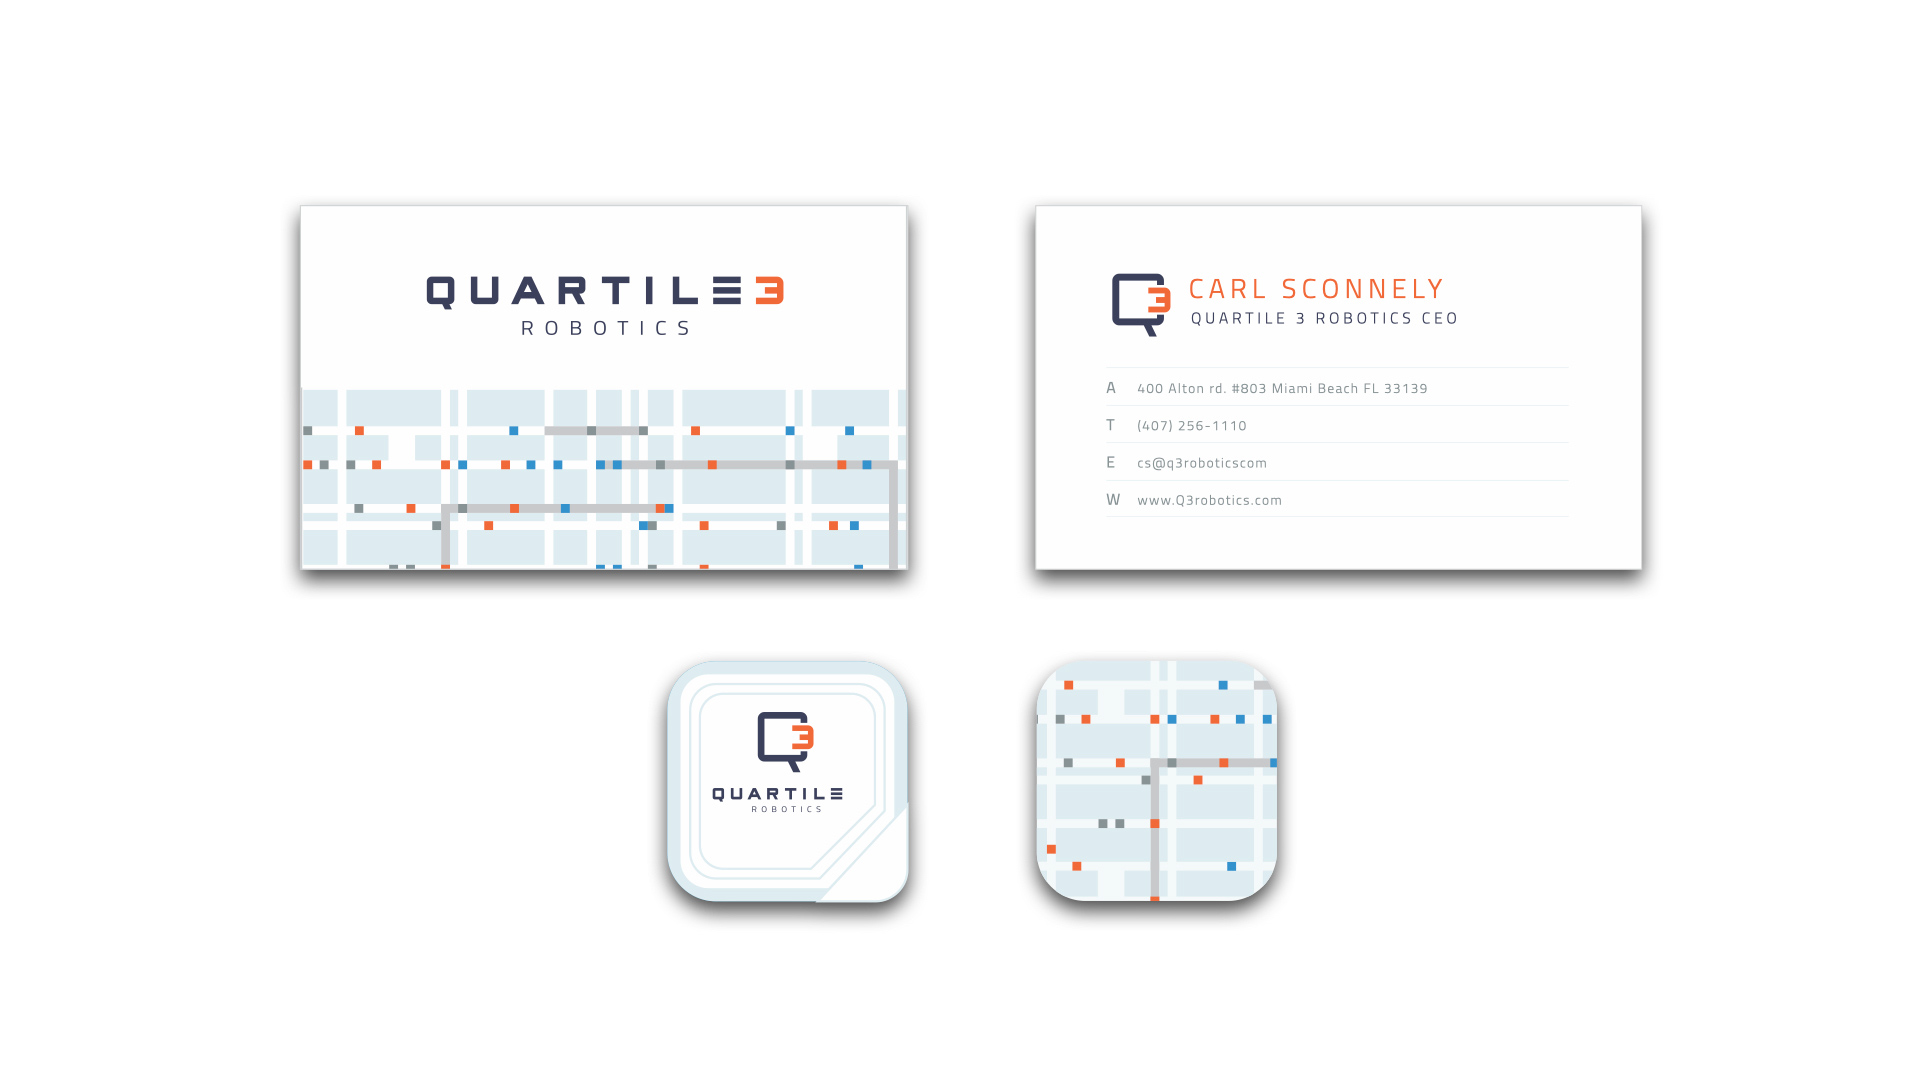 Quartile 3 Robotics business cards and stickers in white, orange, and navy with circuitry design elements.